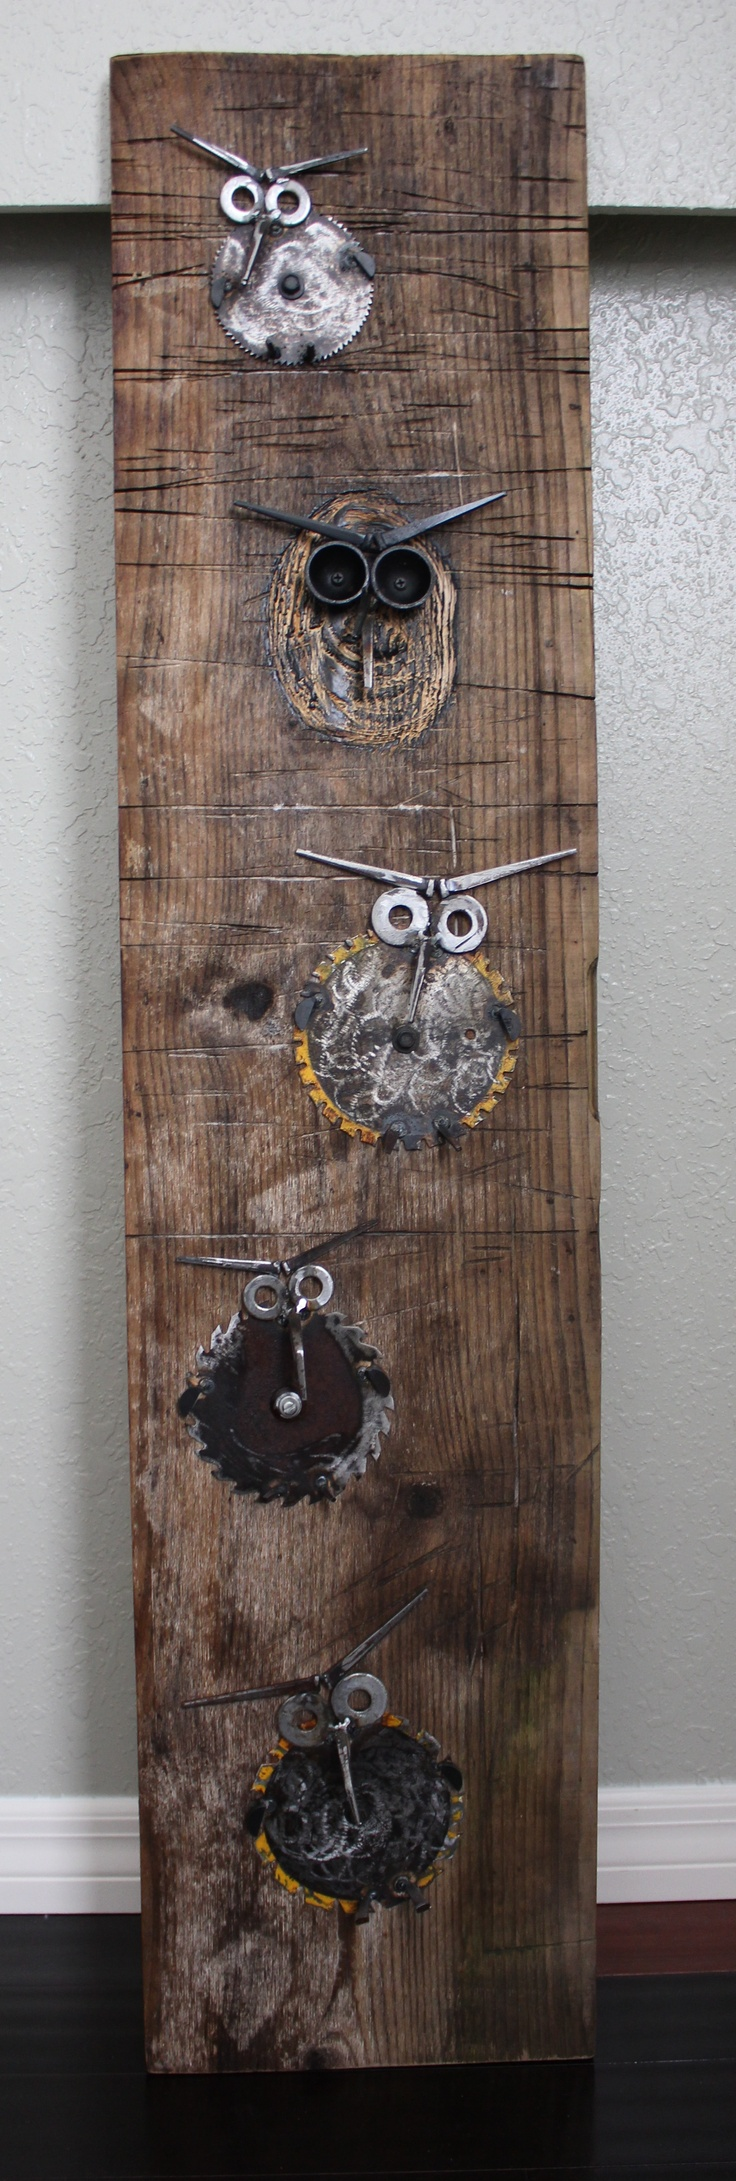 Old piece of distressed wood with family of 5 owls!